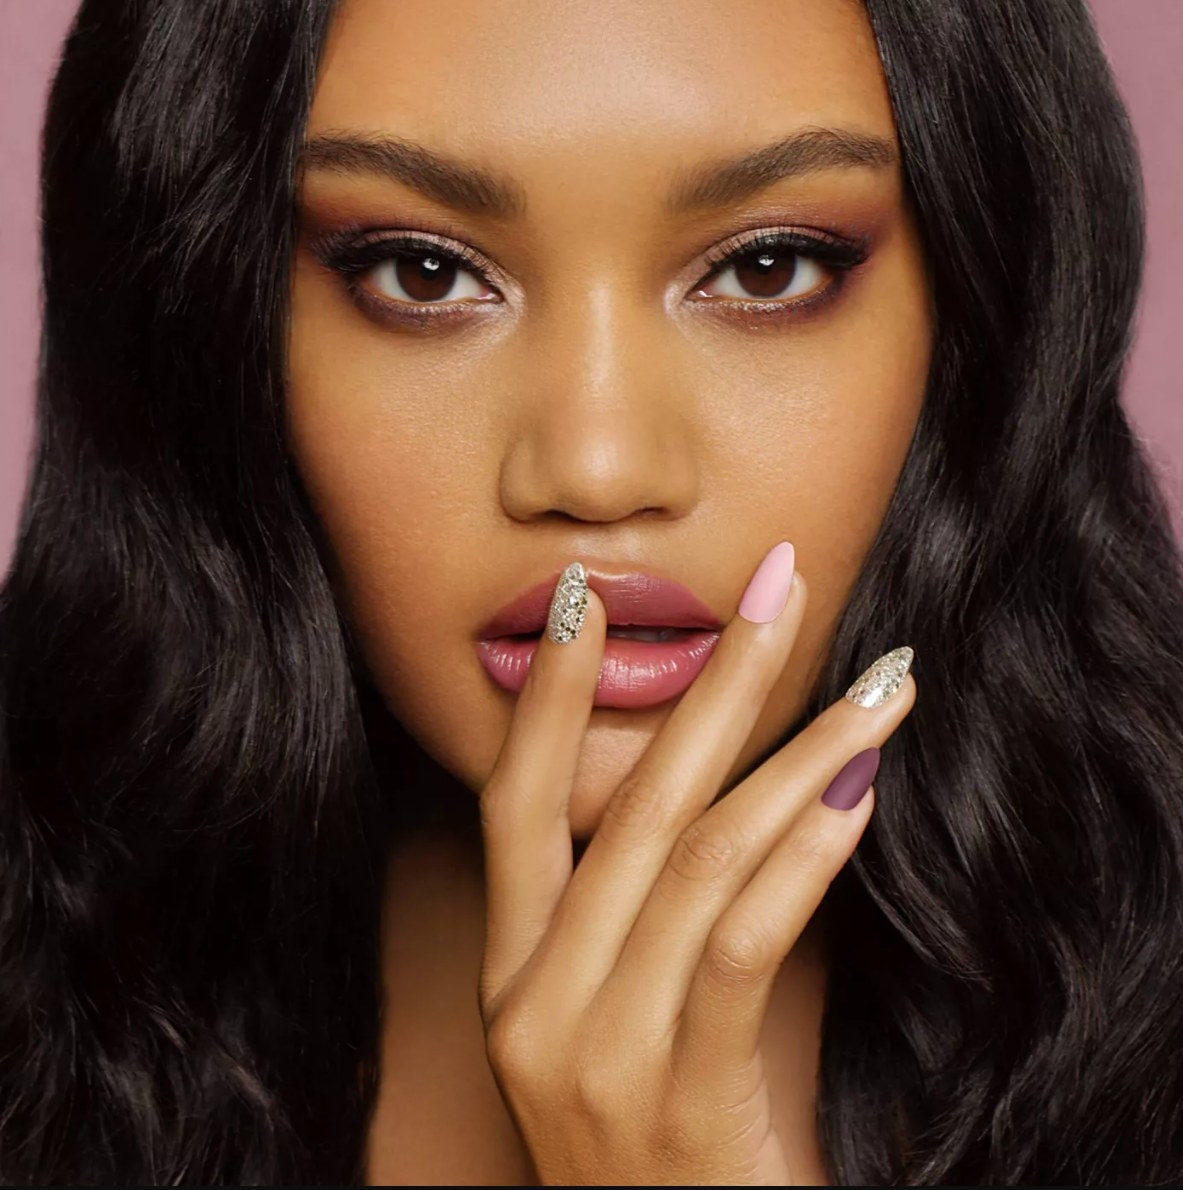 Model wearing the fake nails in several metallic and pink shades